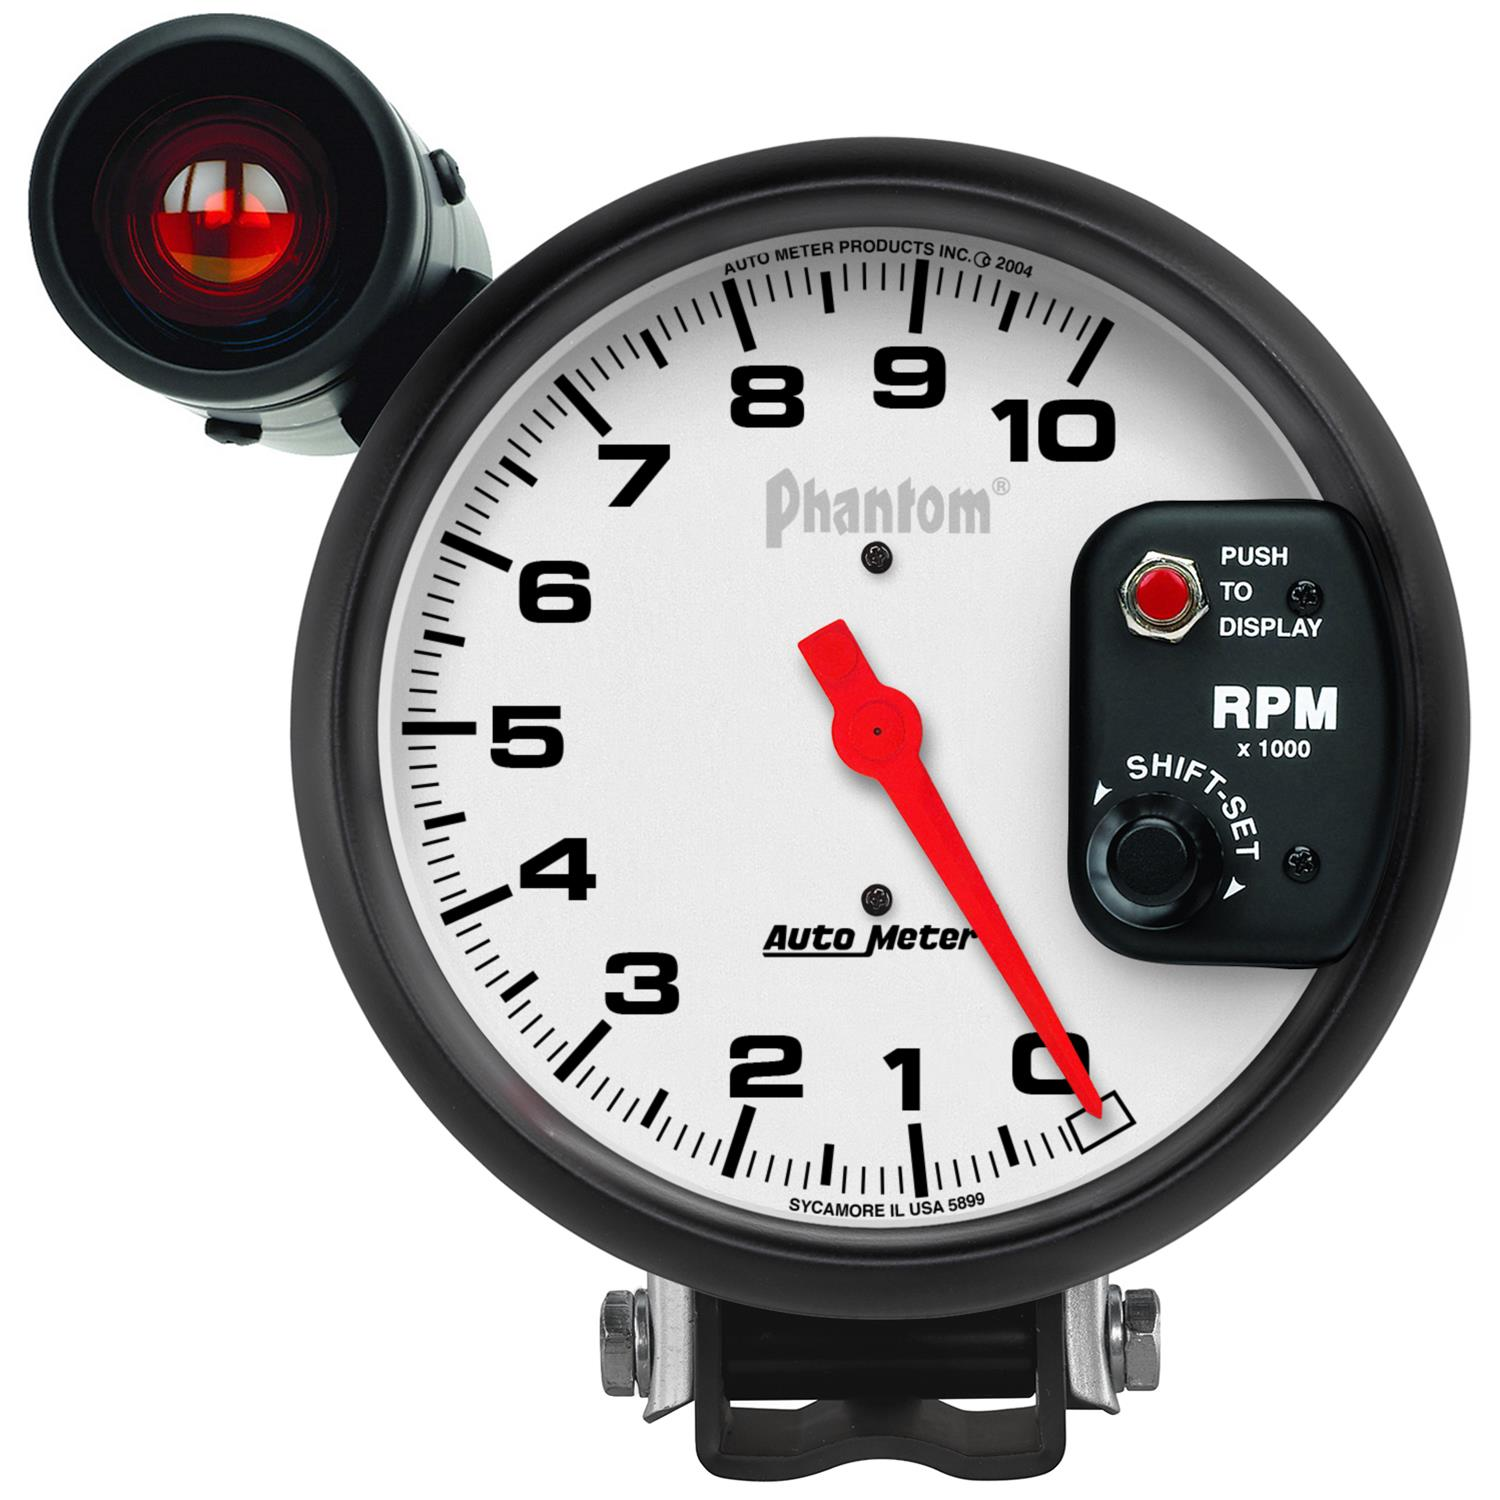 autometer phantom monster shift lite tachometer 0 10,000 5\